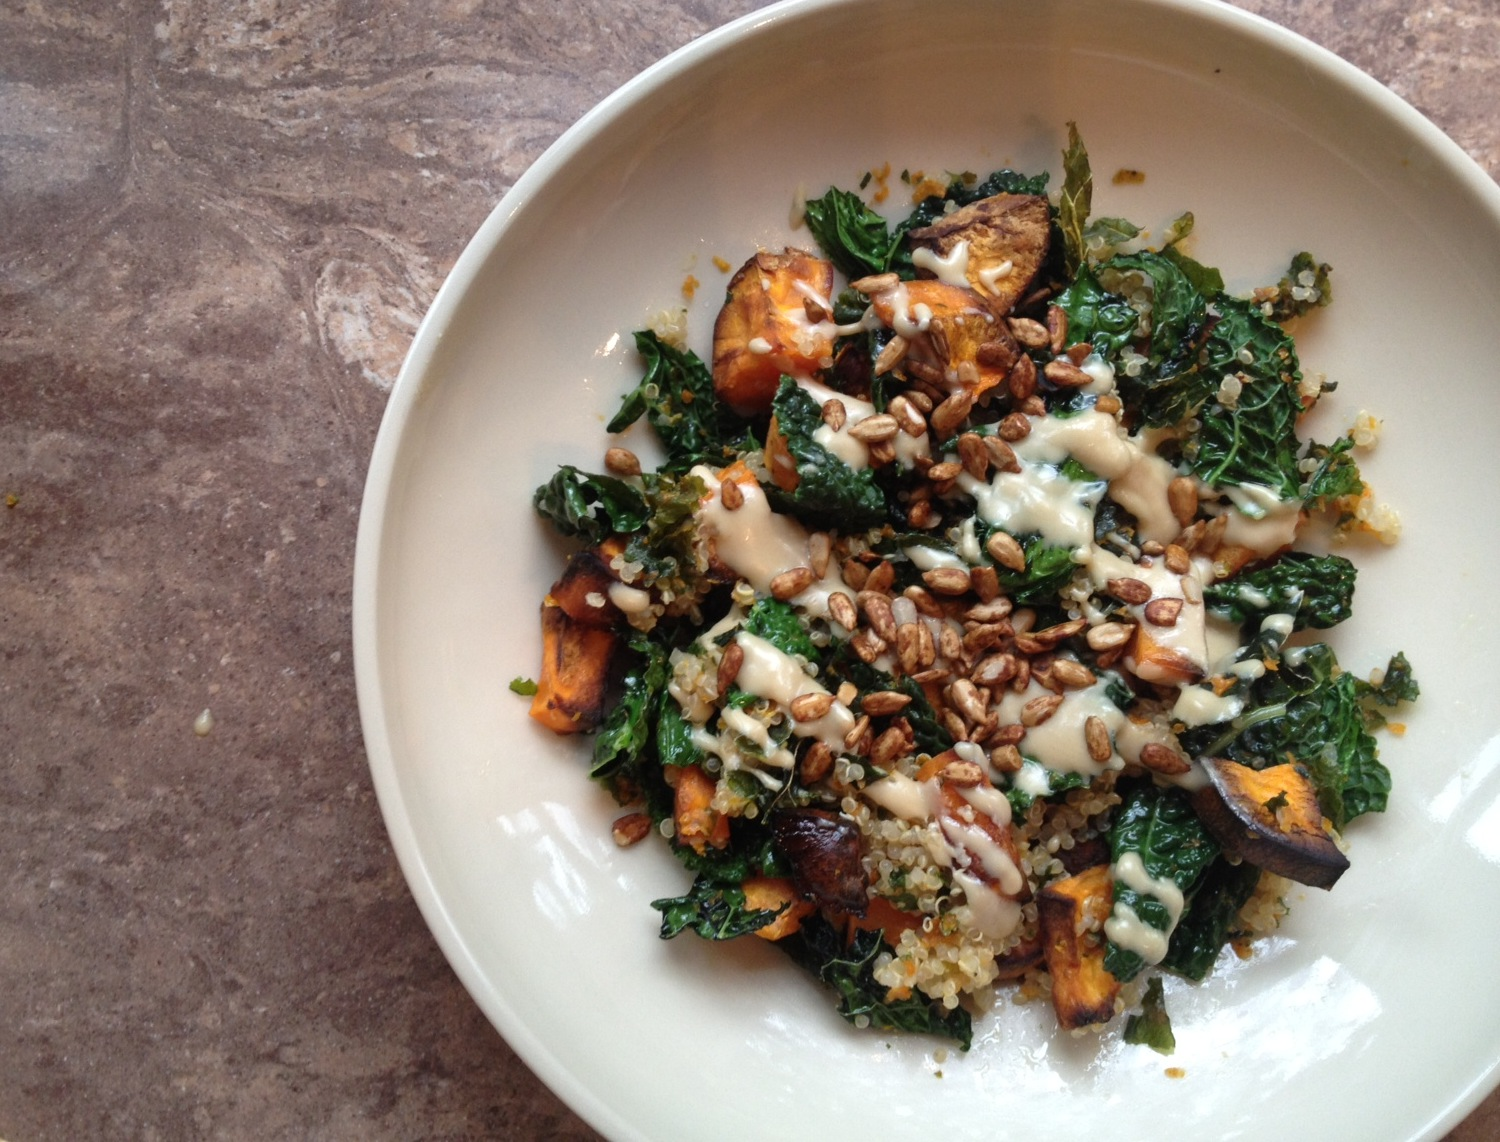 healthy ] – kale, sweet potato and quinoa salad – Peta Serras